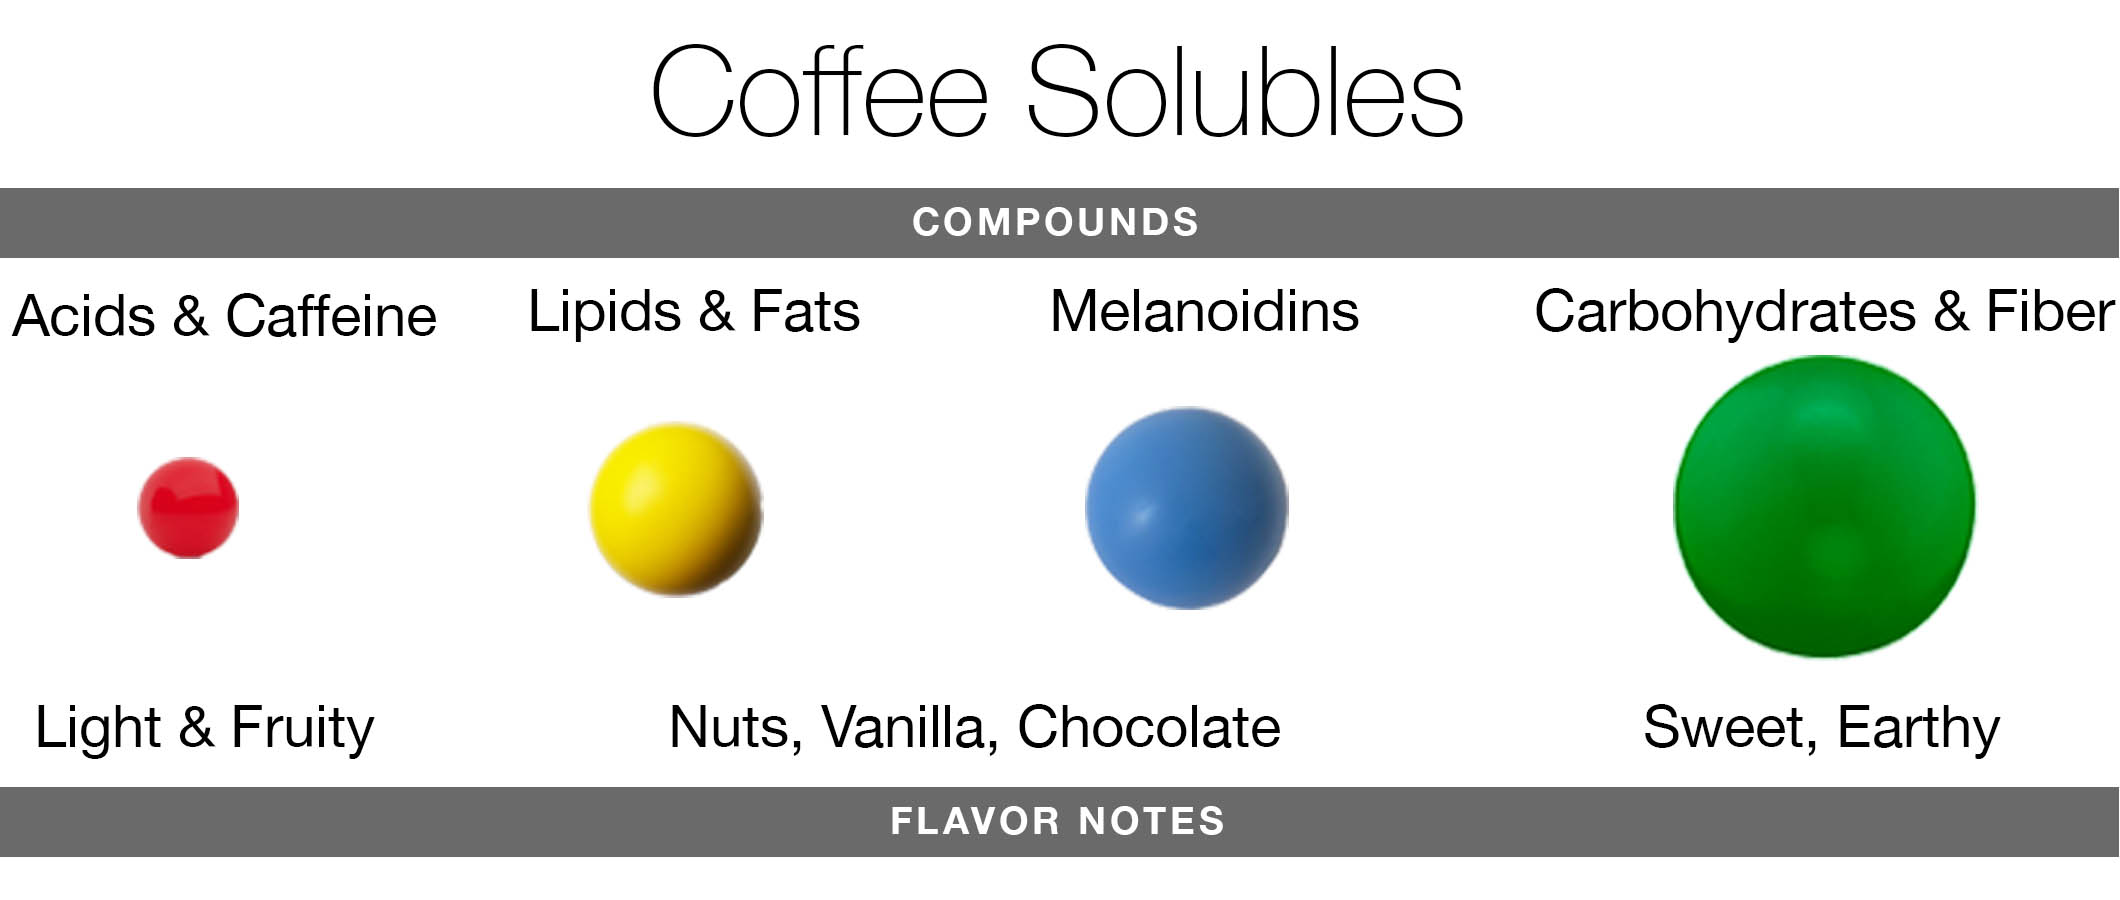 Four different coffee compounds and their flavor notes